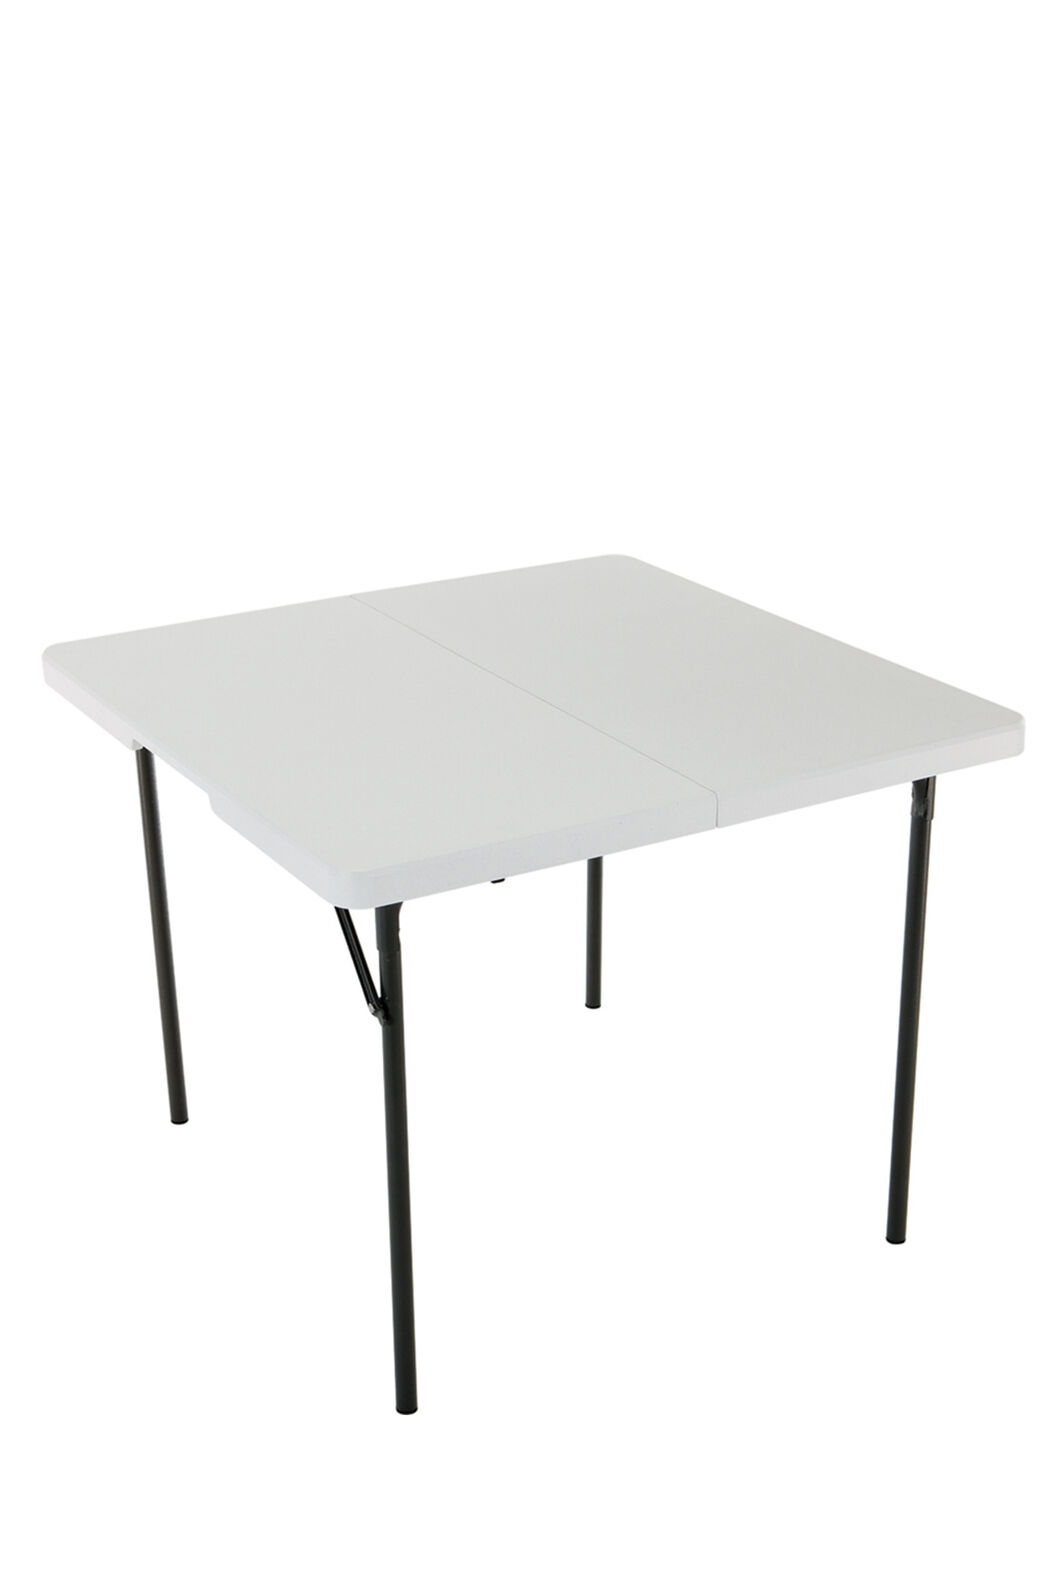 Lifetime 94cm Square Blow Mould Table, None, hi-res